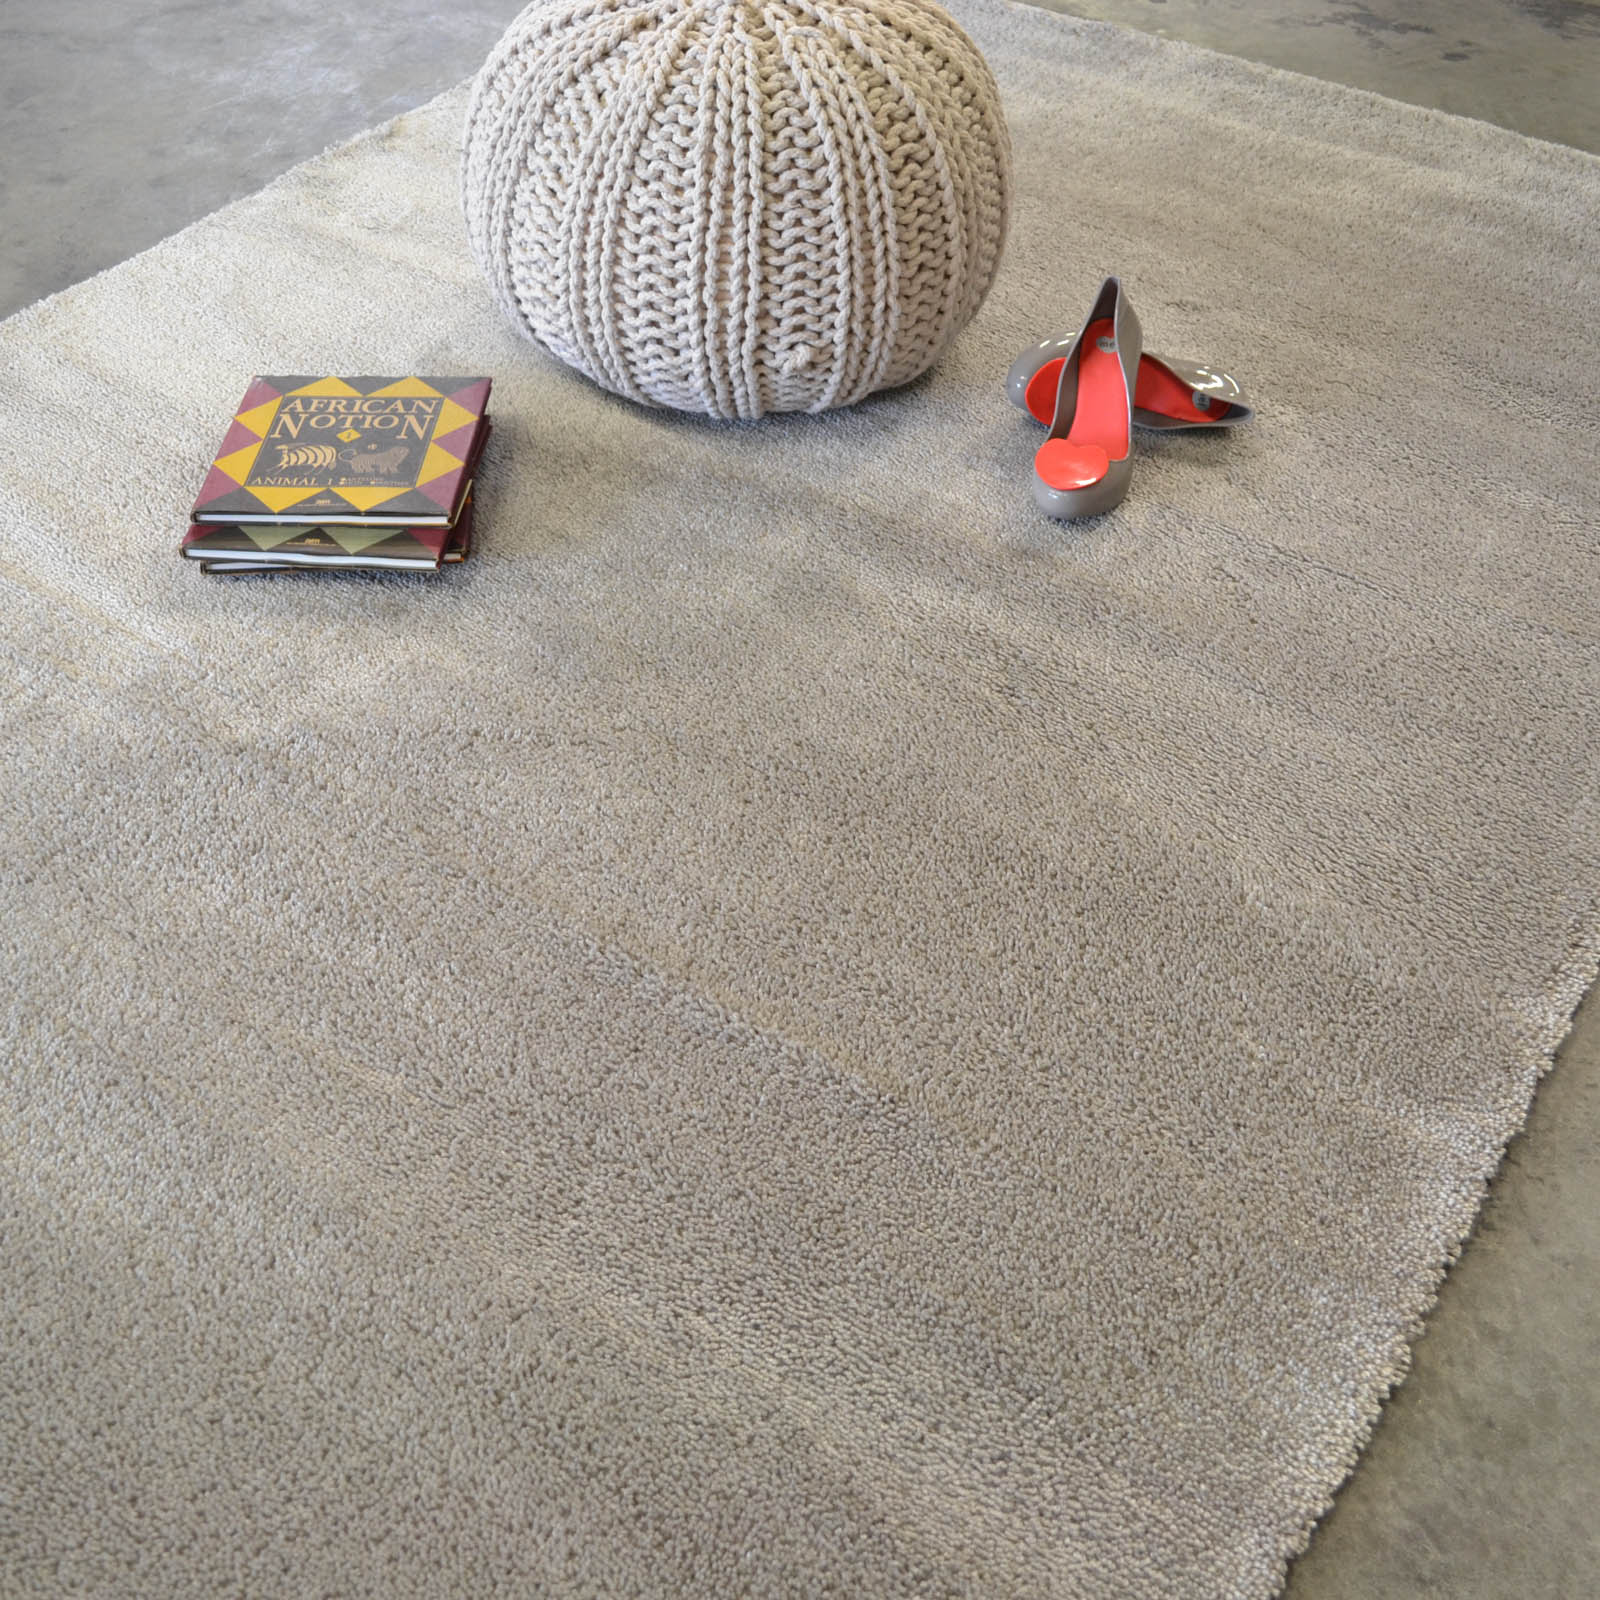 Hermitage Rugs 21904 by Brink and Campman